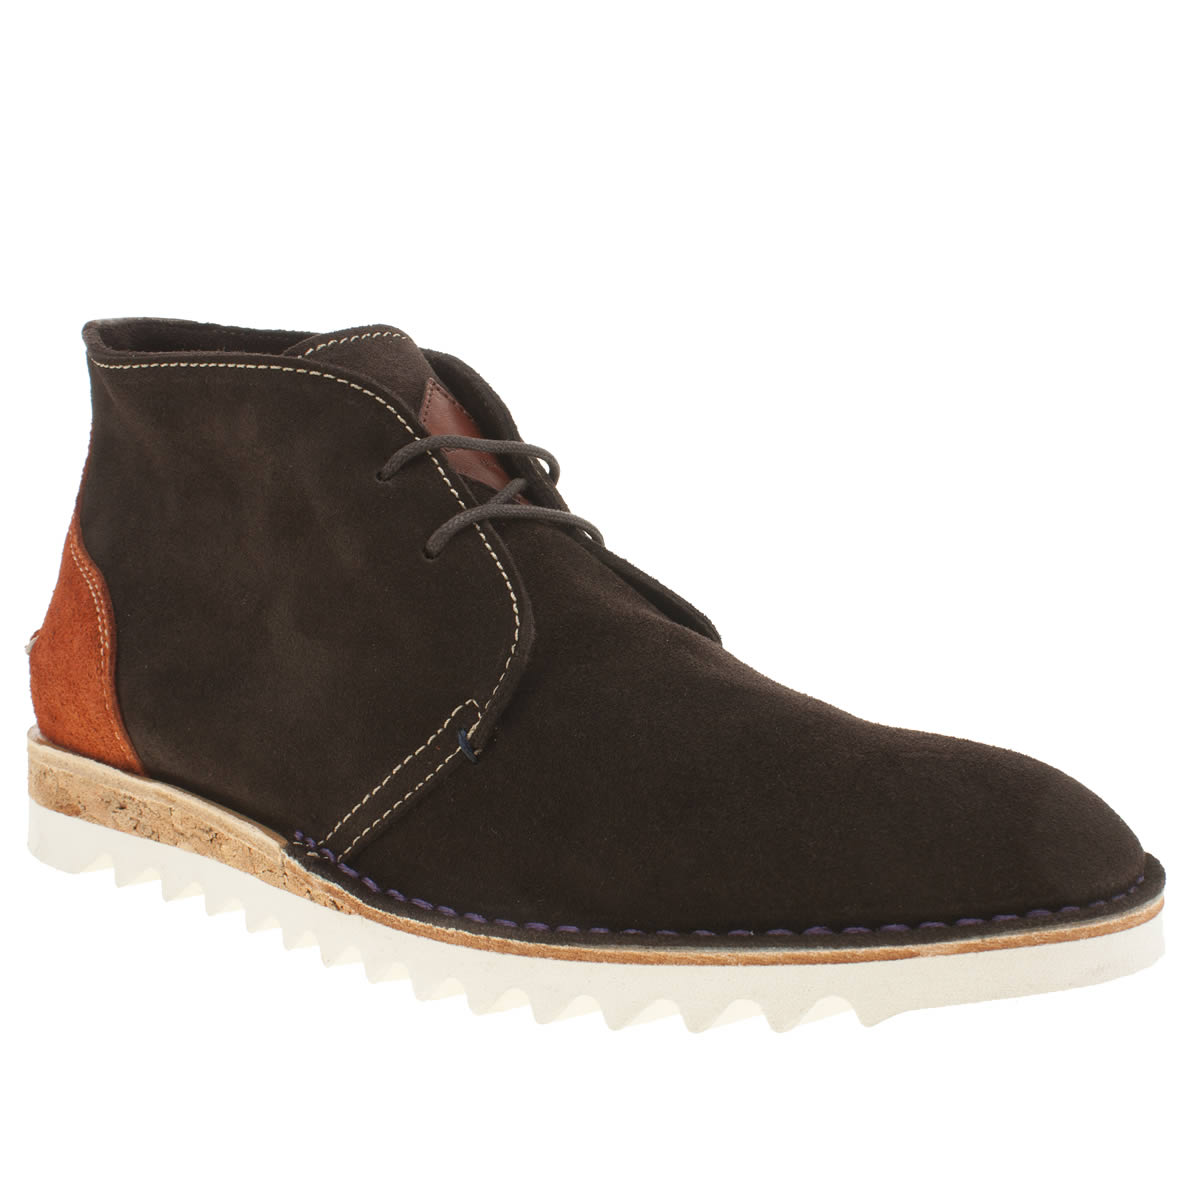 Paul Smith Shoes Paul Smith Shoes Brown Callisto Boots